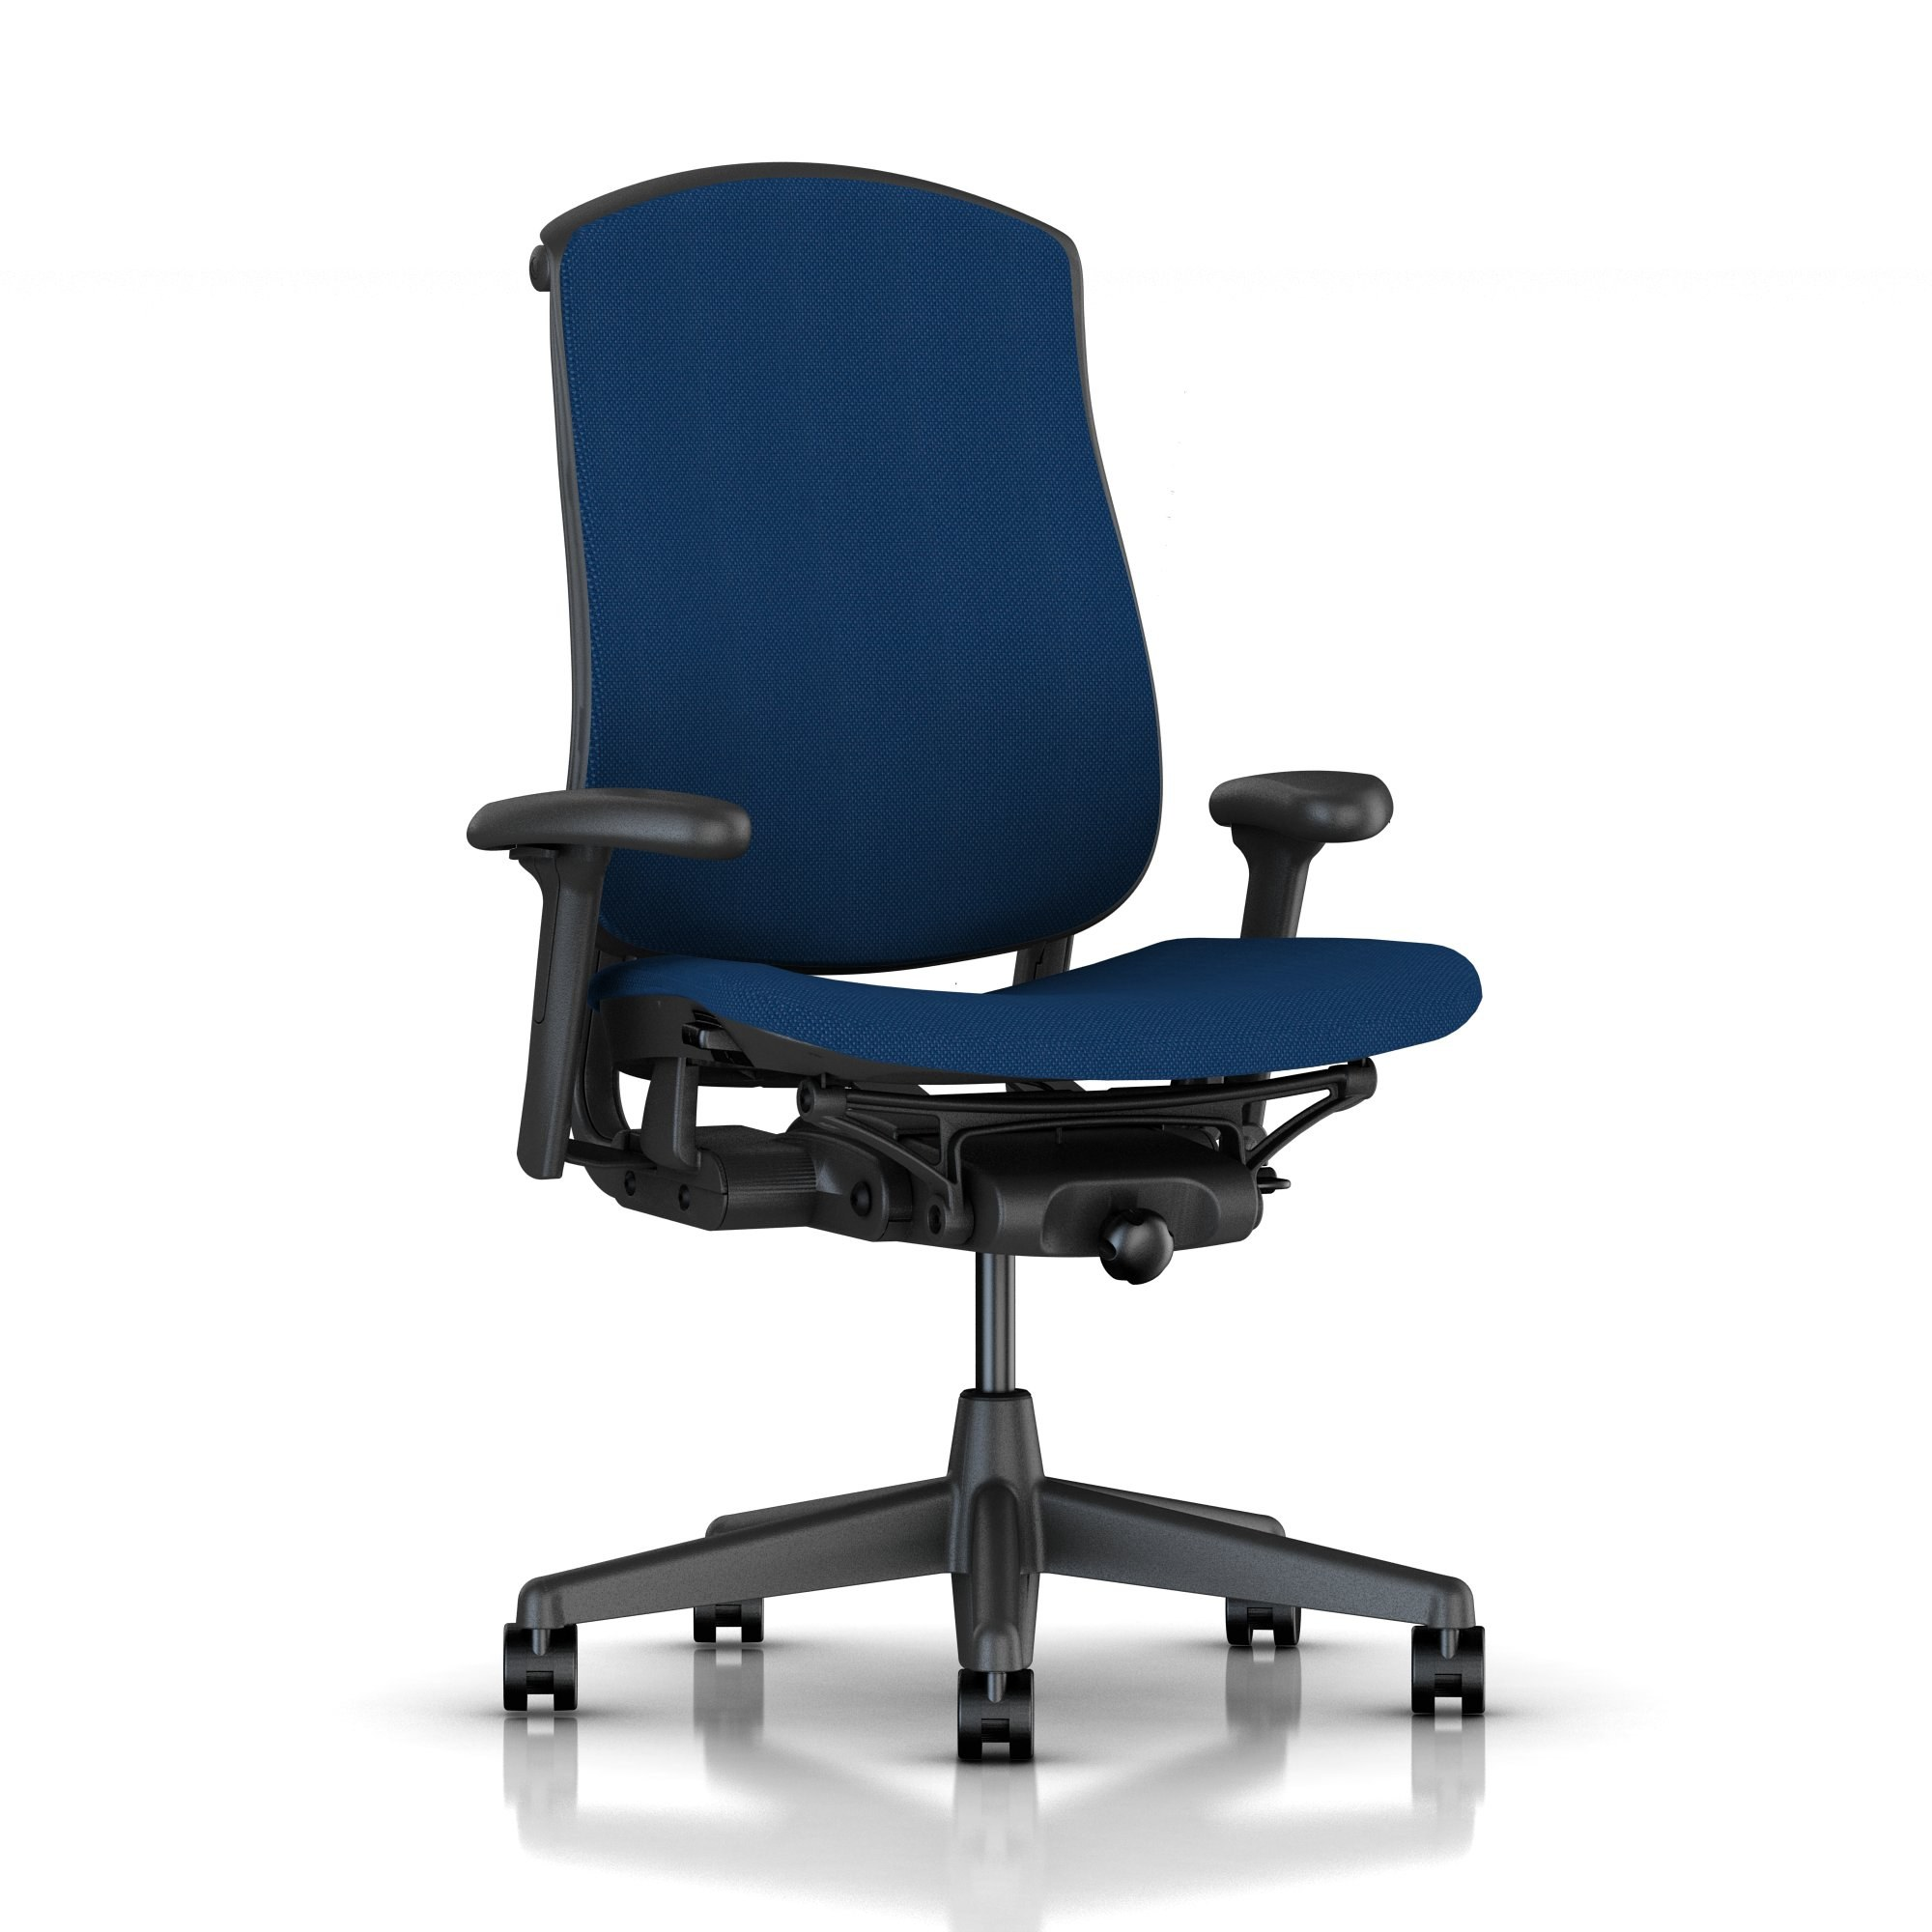 Basic Celle Chair In Indigo Crossing Fabric By Herman Miller HER